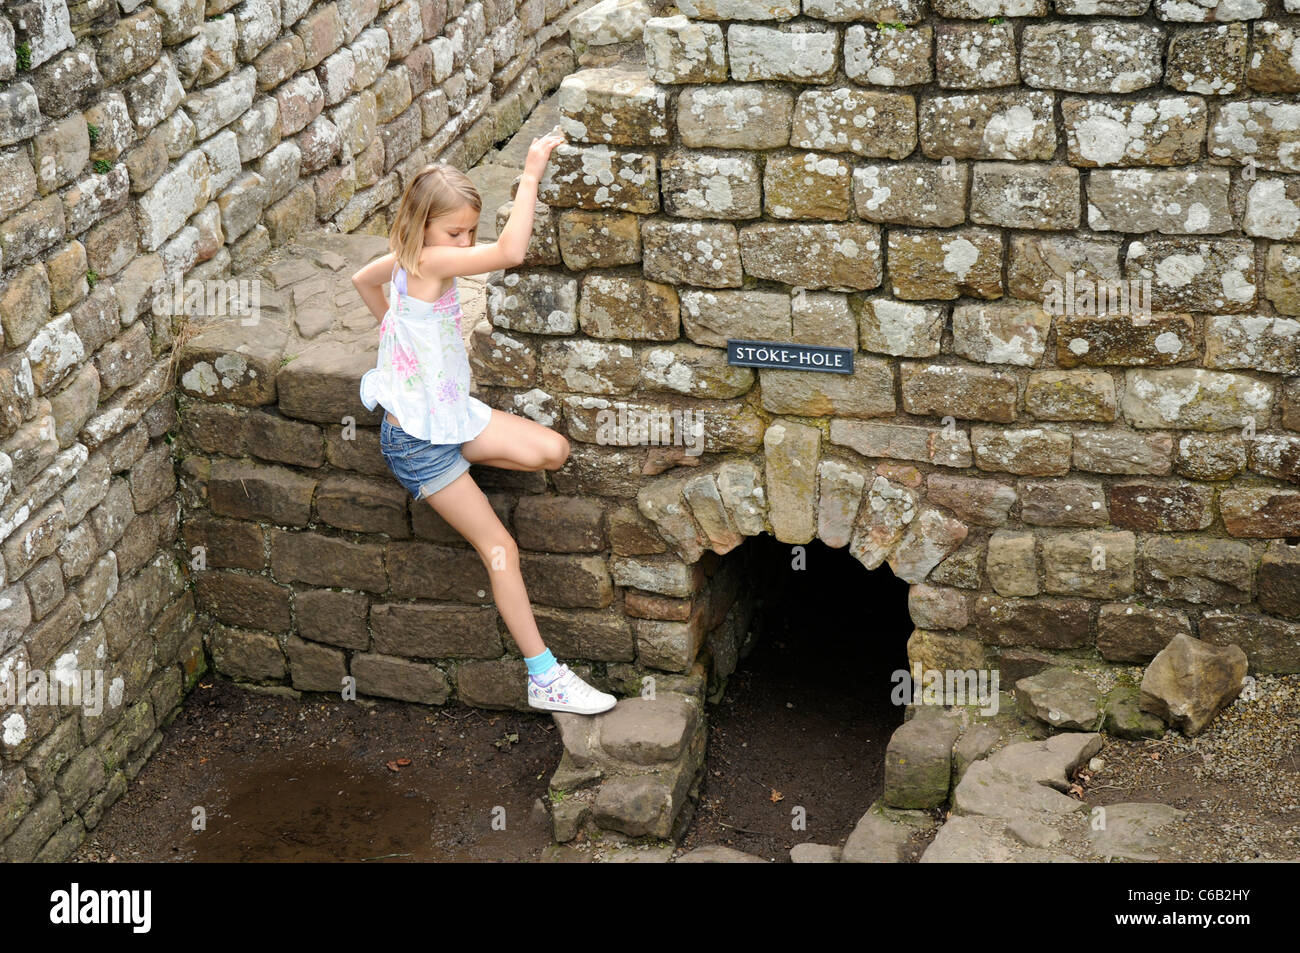 Young girl climbing over Roman Bath House ruins at Chesters Fort, on Hadrian's Wall, England. - Stock Image